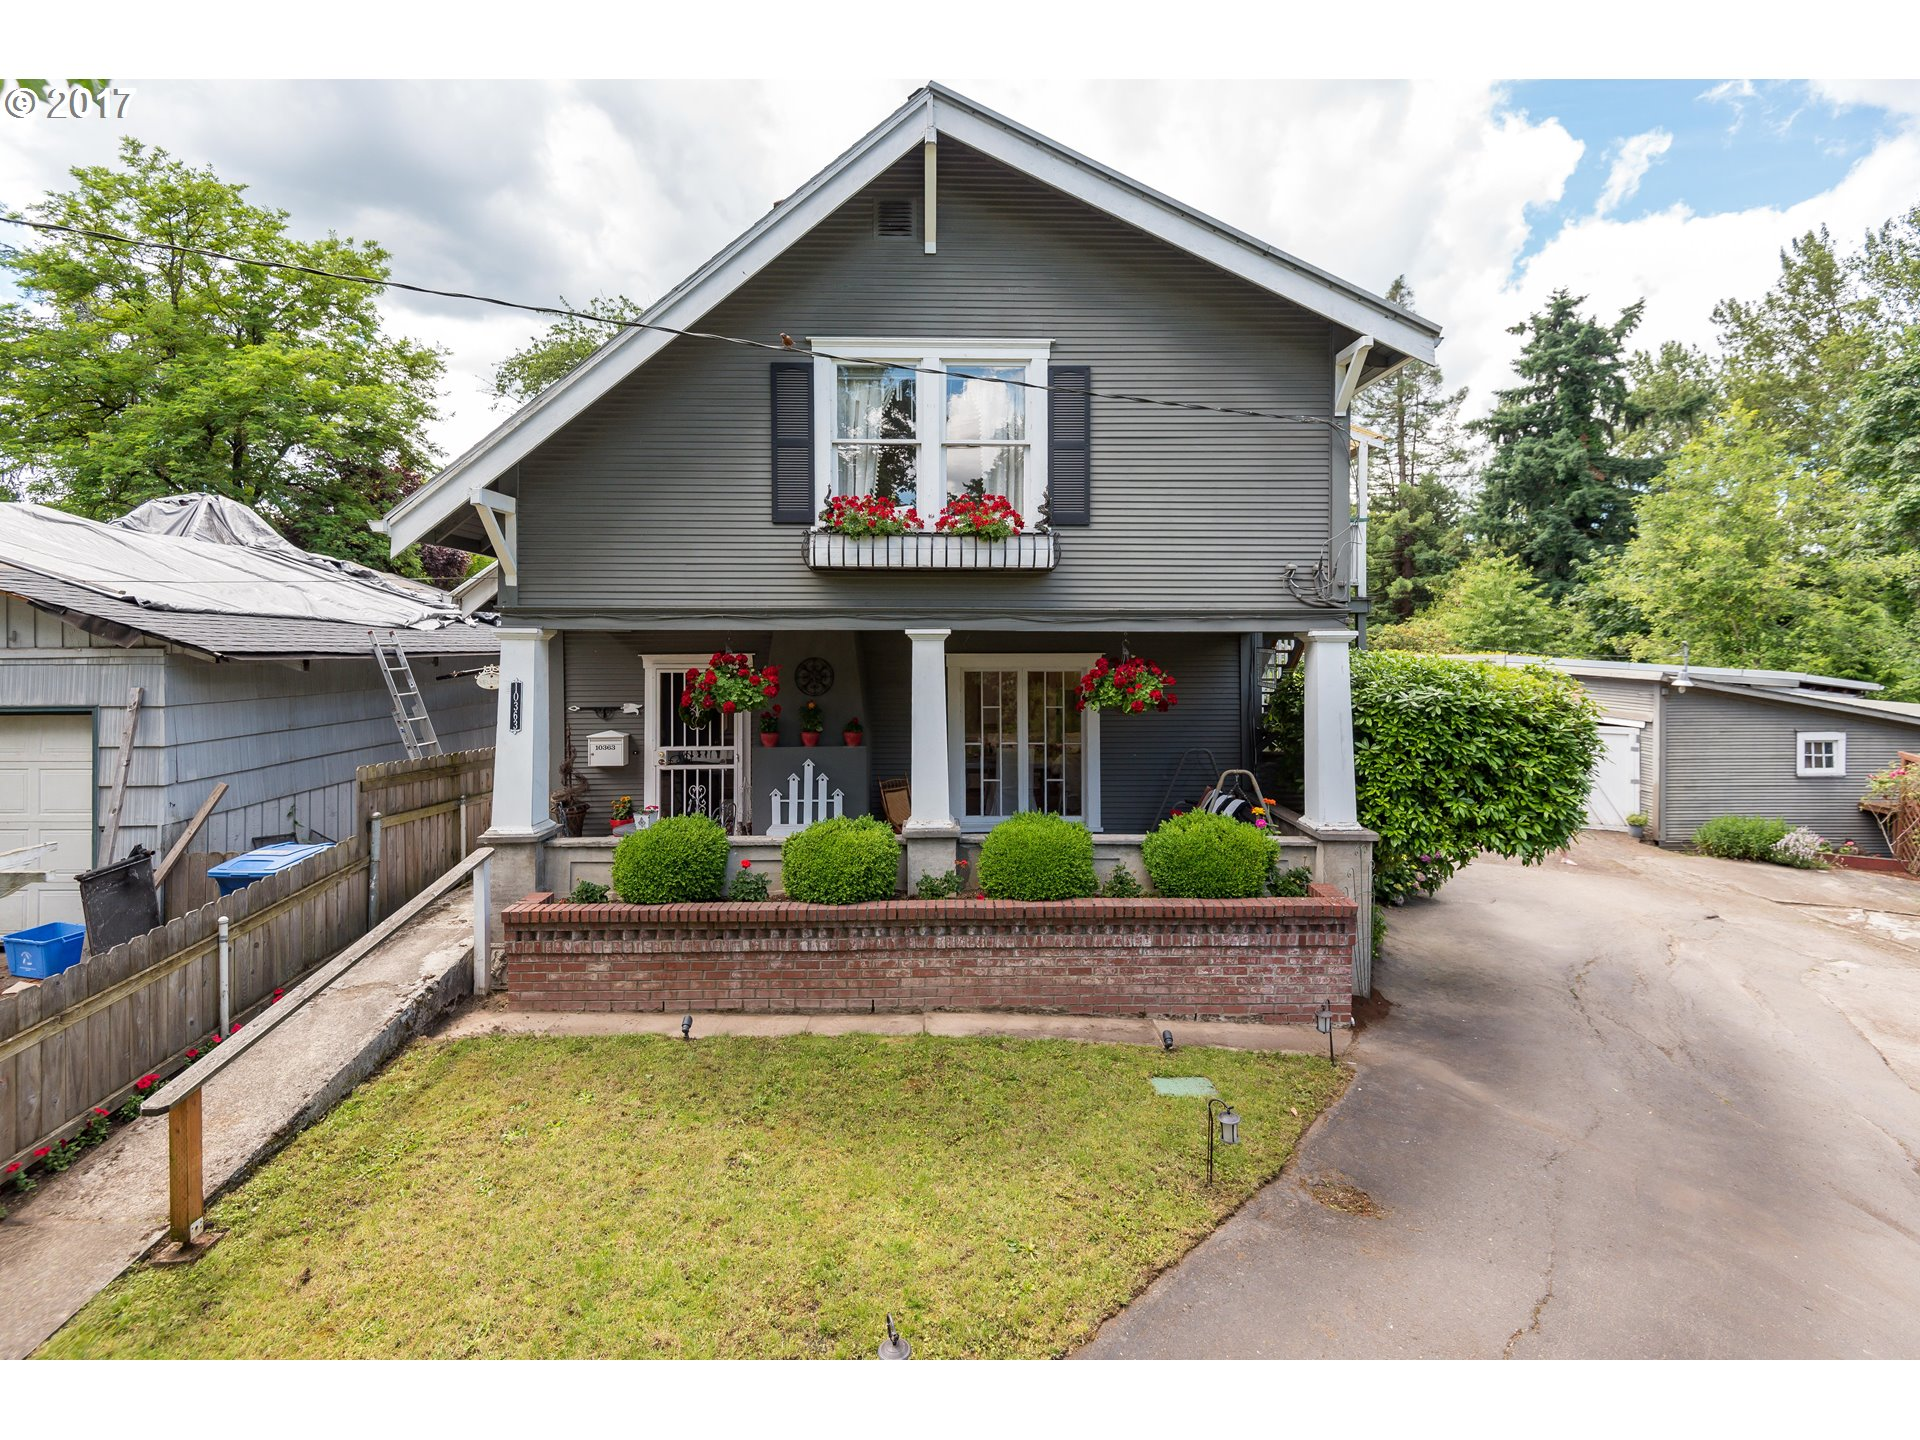 10363 SE 24TH AVE Milwaukie, OR 97222 - MLS #: 17339689